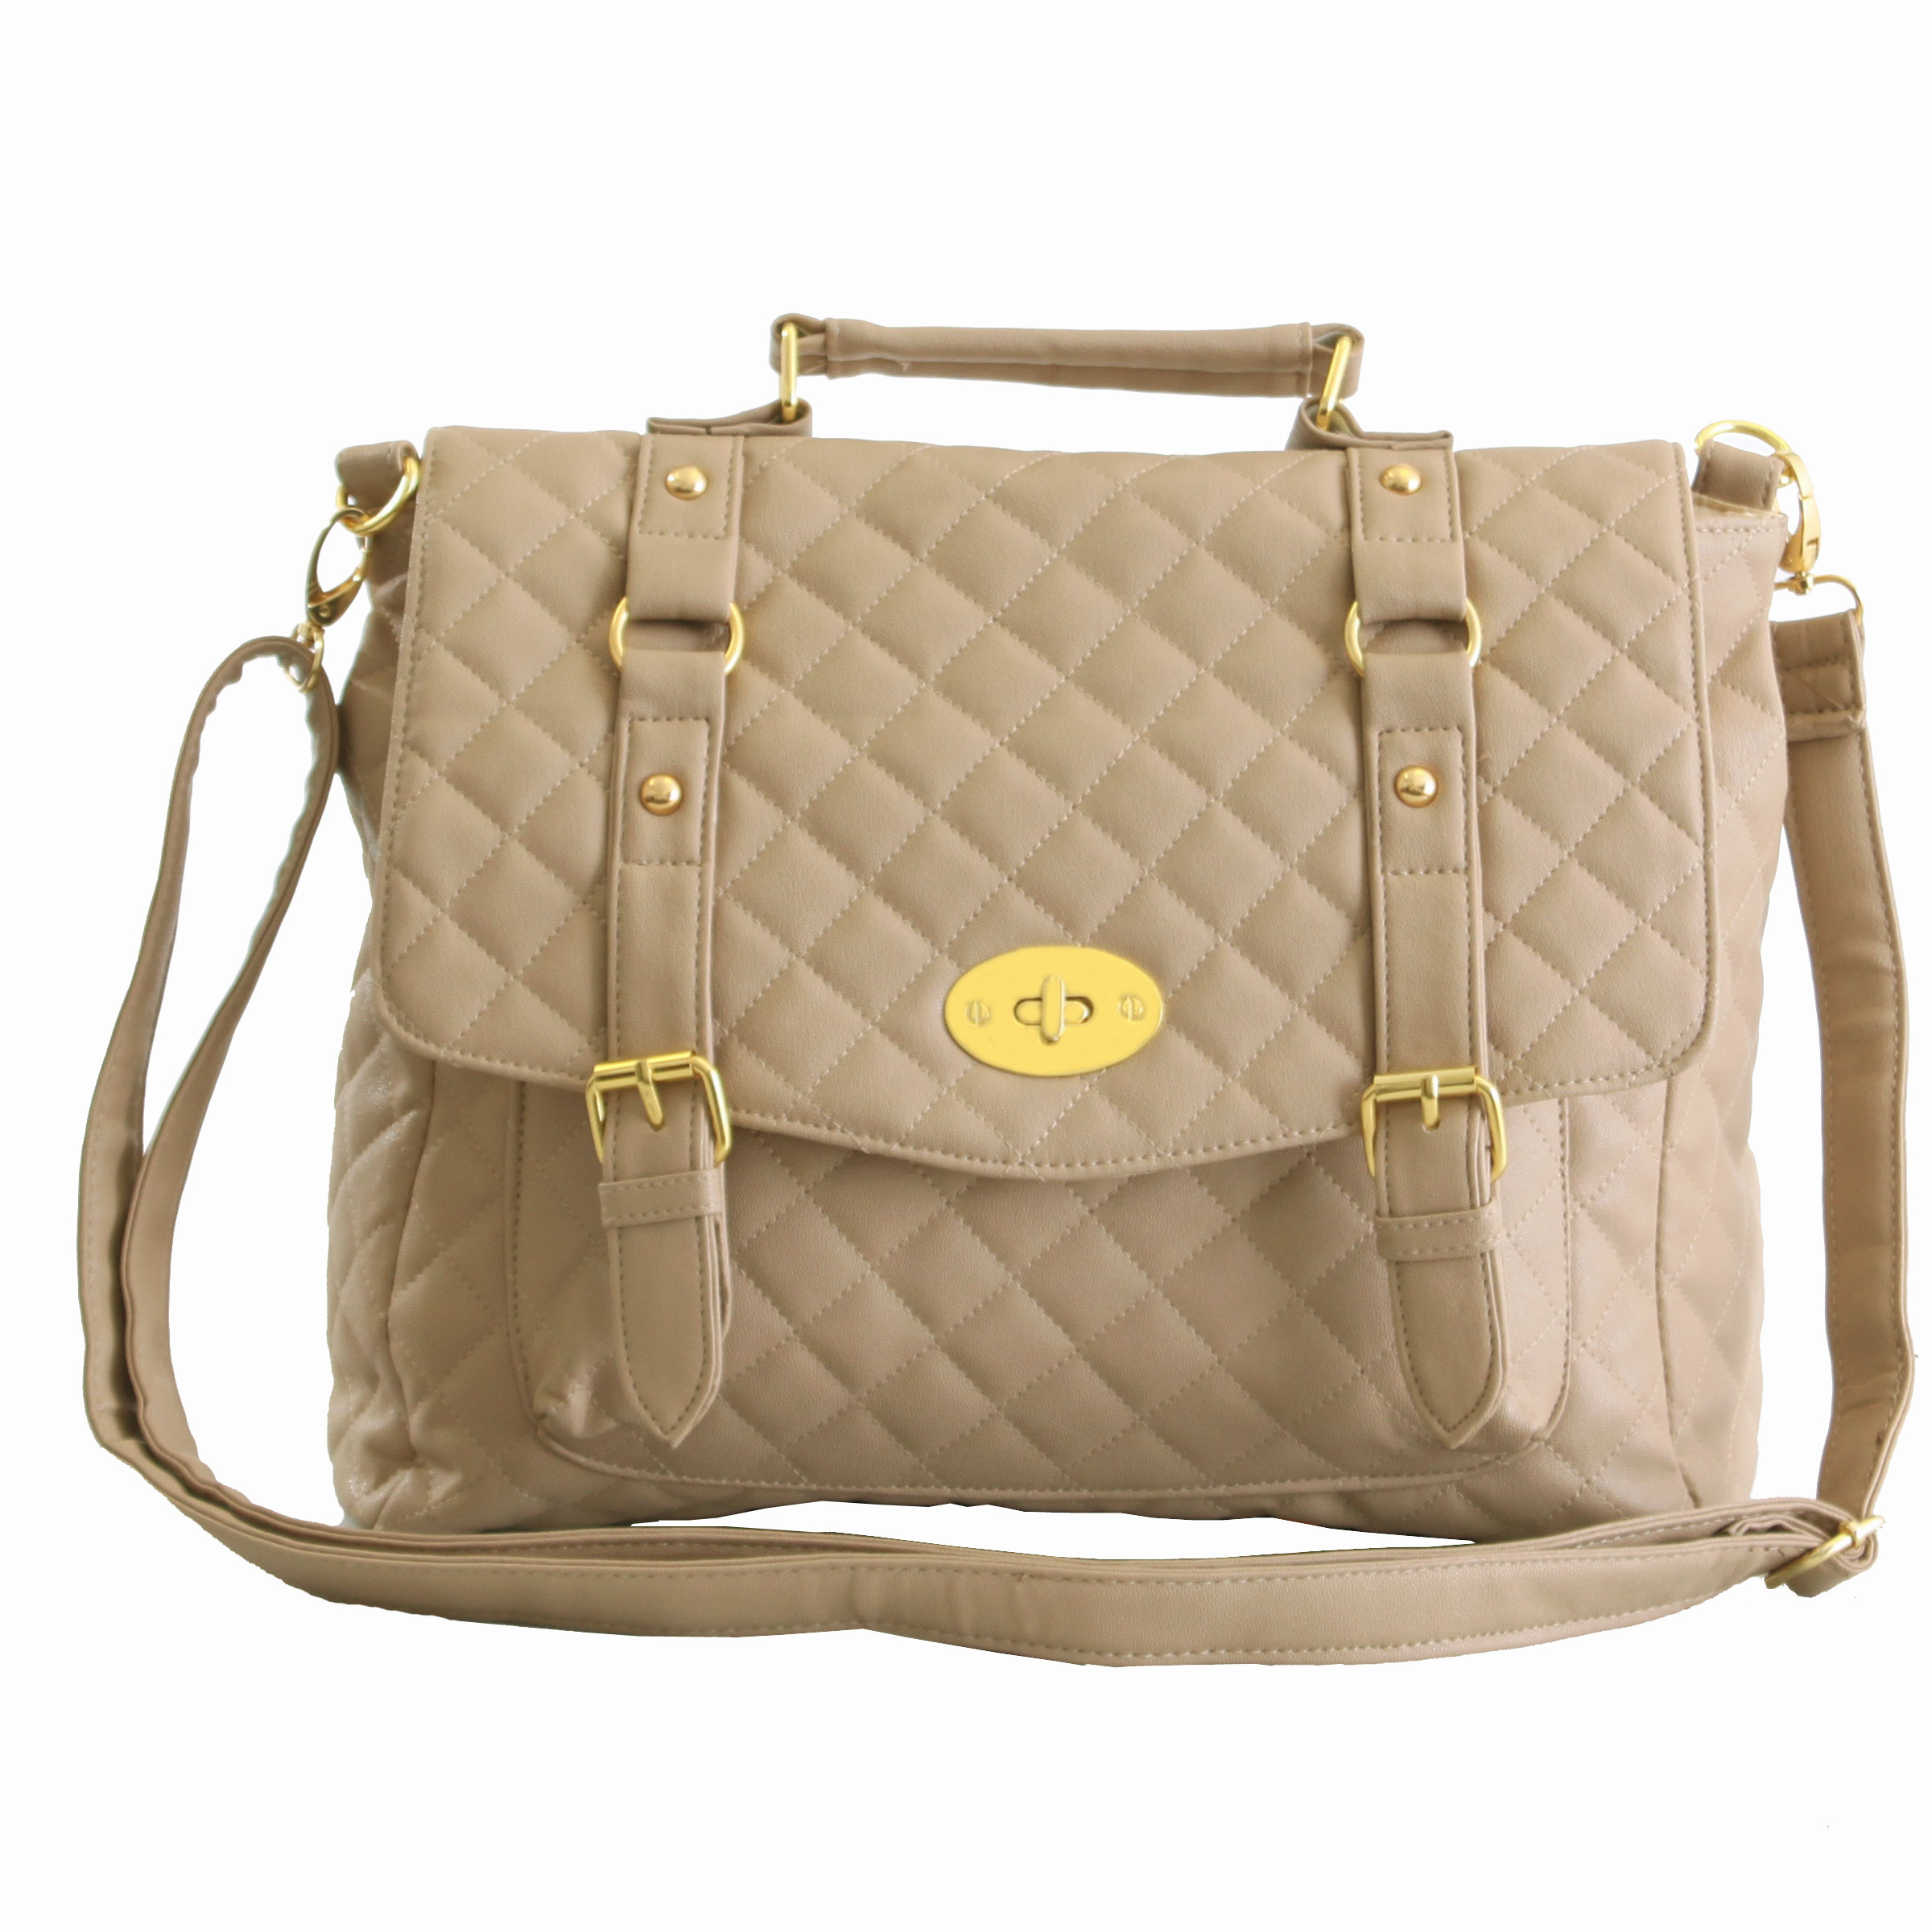 Find great deals on eBay for ladies satchel handbag. Shop with confidence.